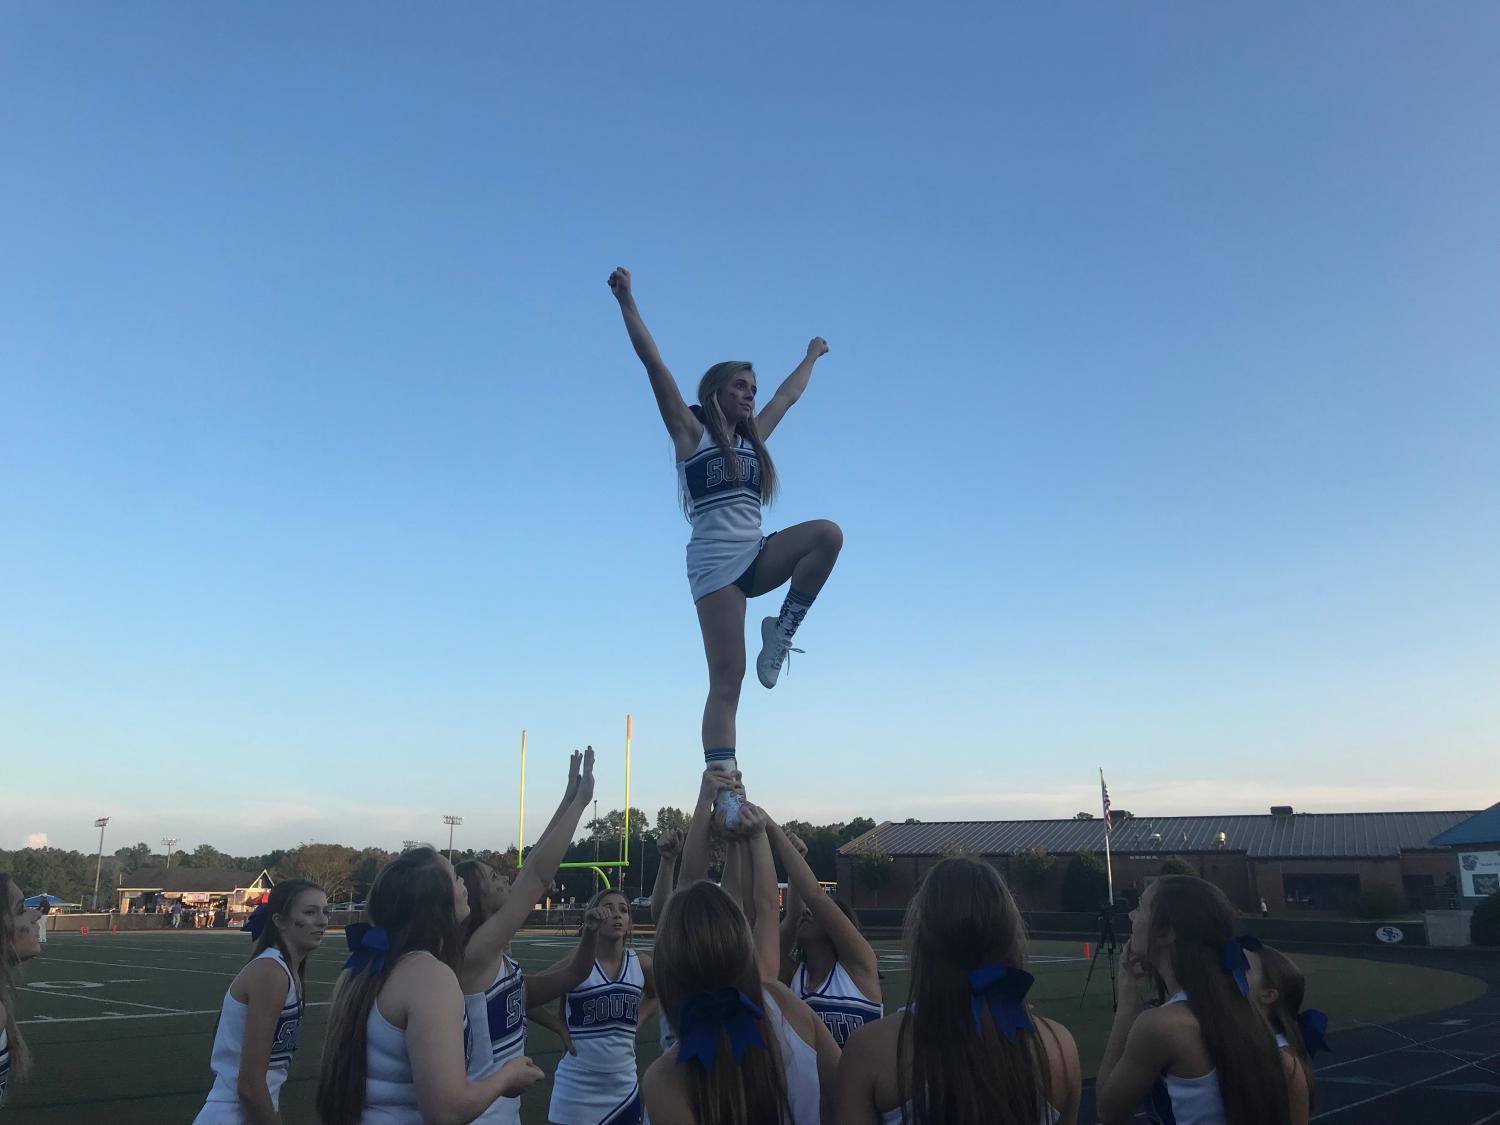 South Forsyth's cheer squad hoists their flyer up in the air to ramp up the crowd before the game. The cheerleaders continued to support the War Eagles with spirit and optimism throughout the rest of the game.